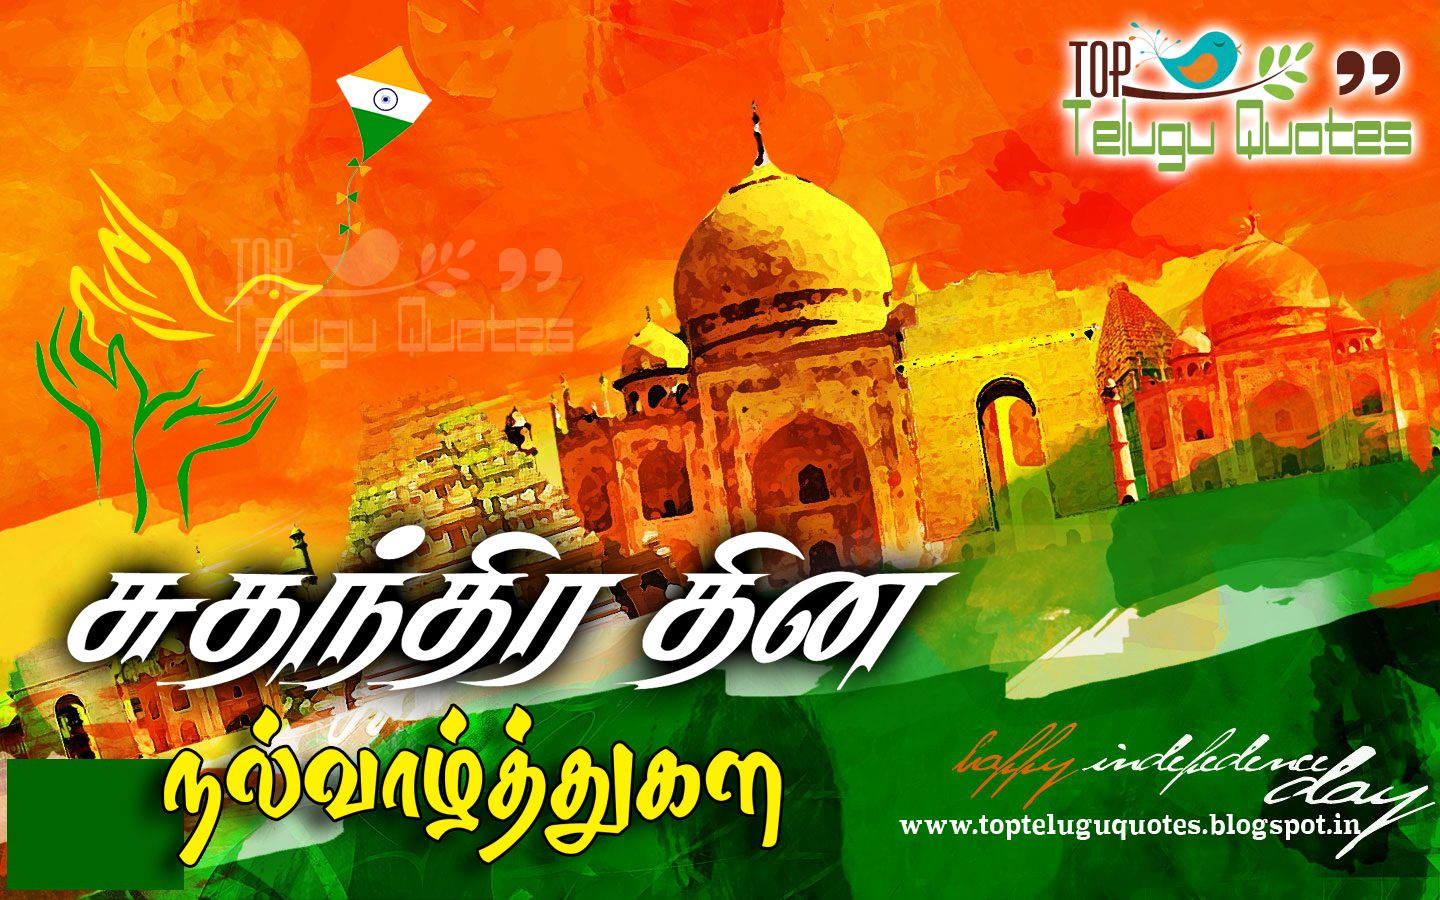 Happy independence day tamil quotes wishes greetings 15aug happy independence day tamil quotes wishes greetings 15aug kristyandbryce Gallery